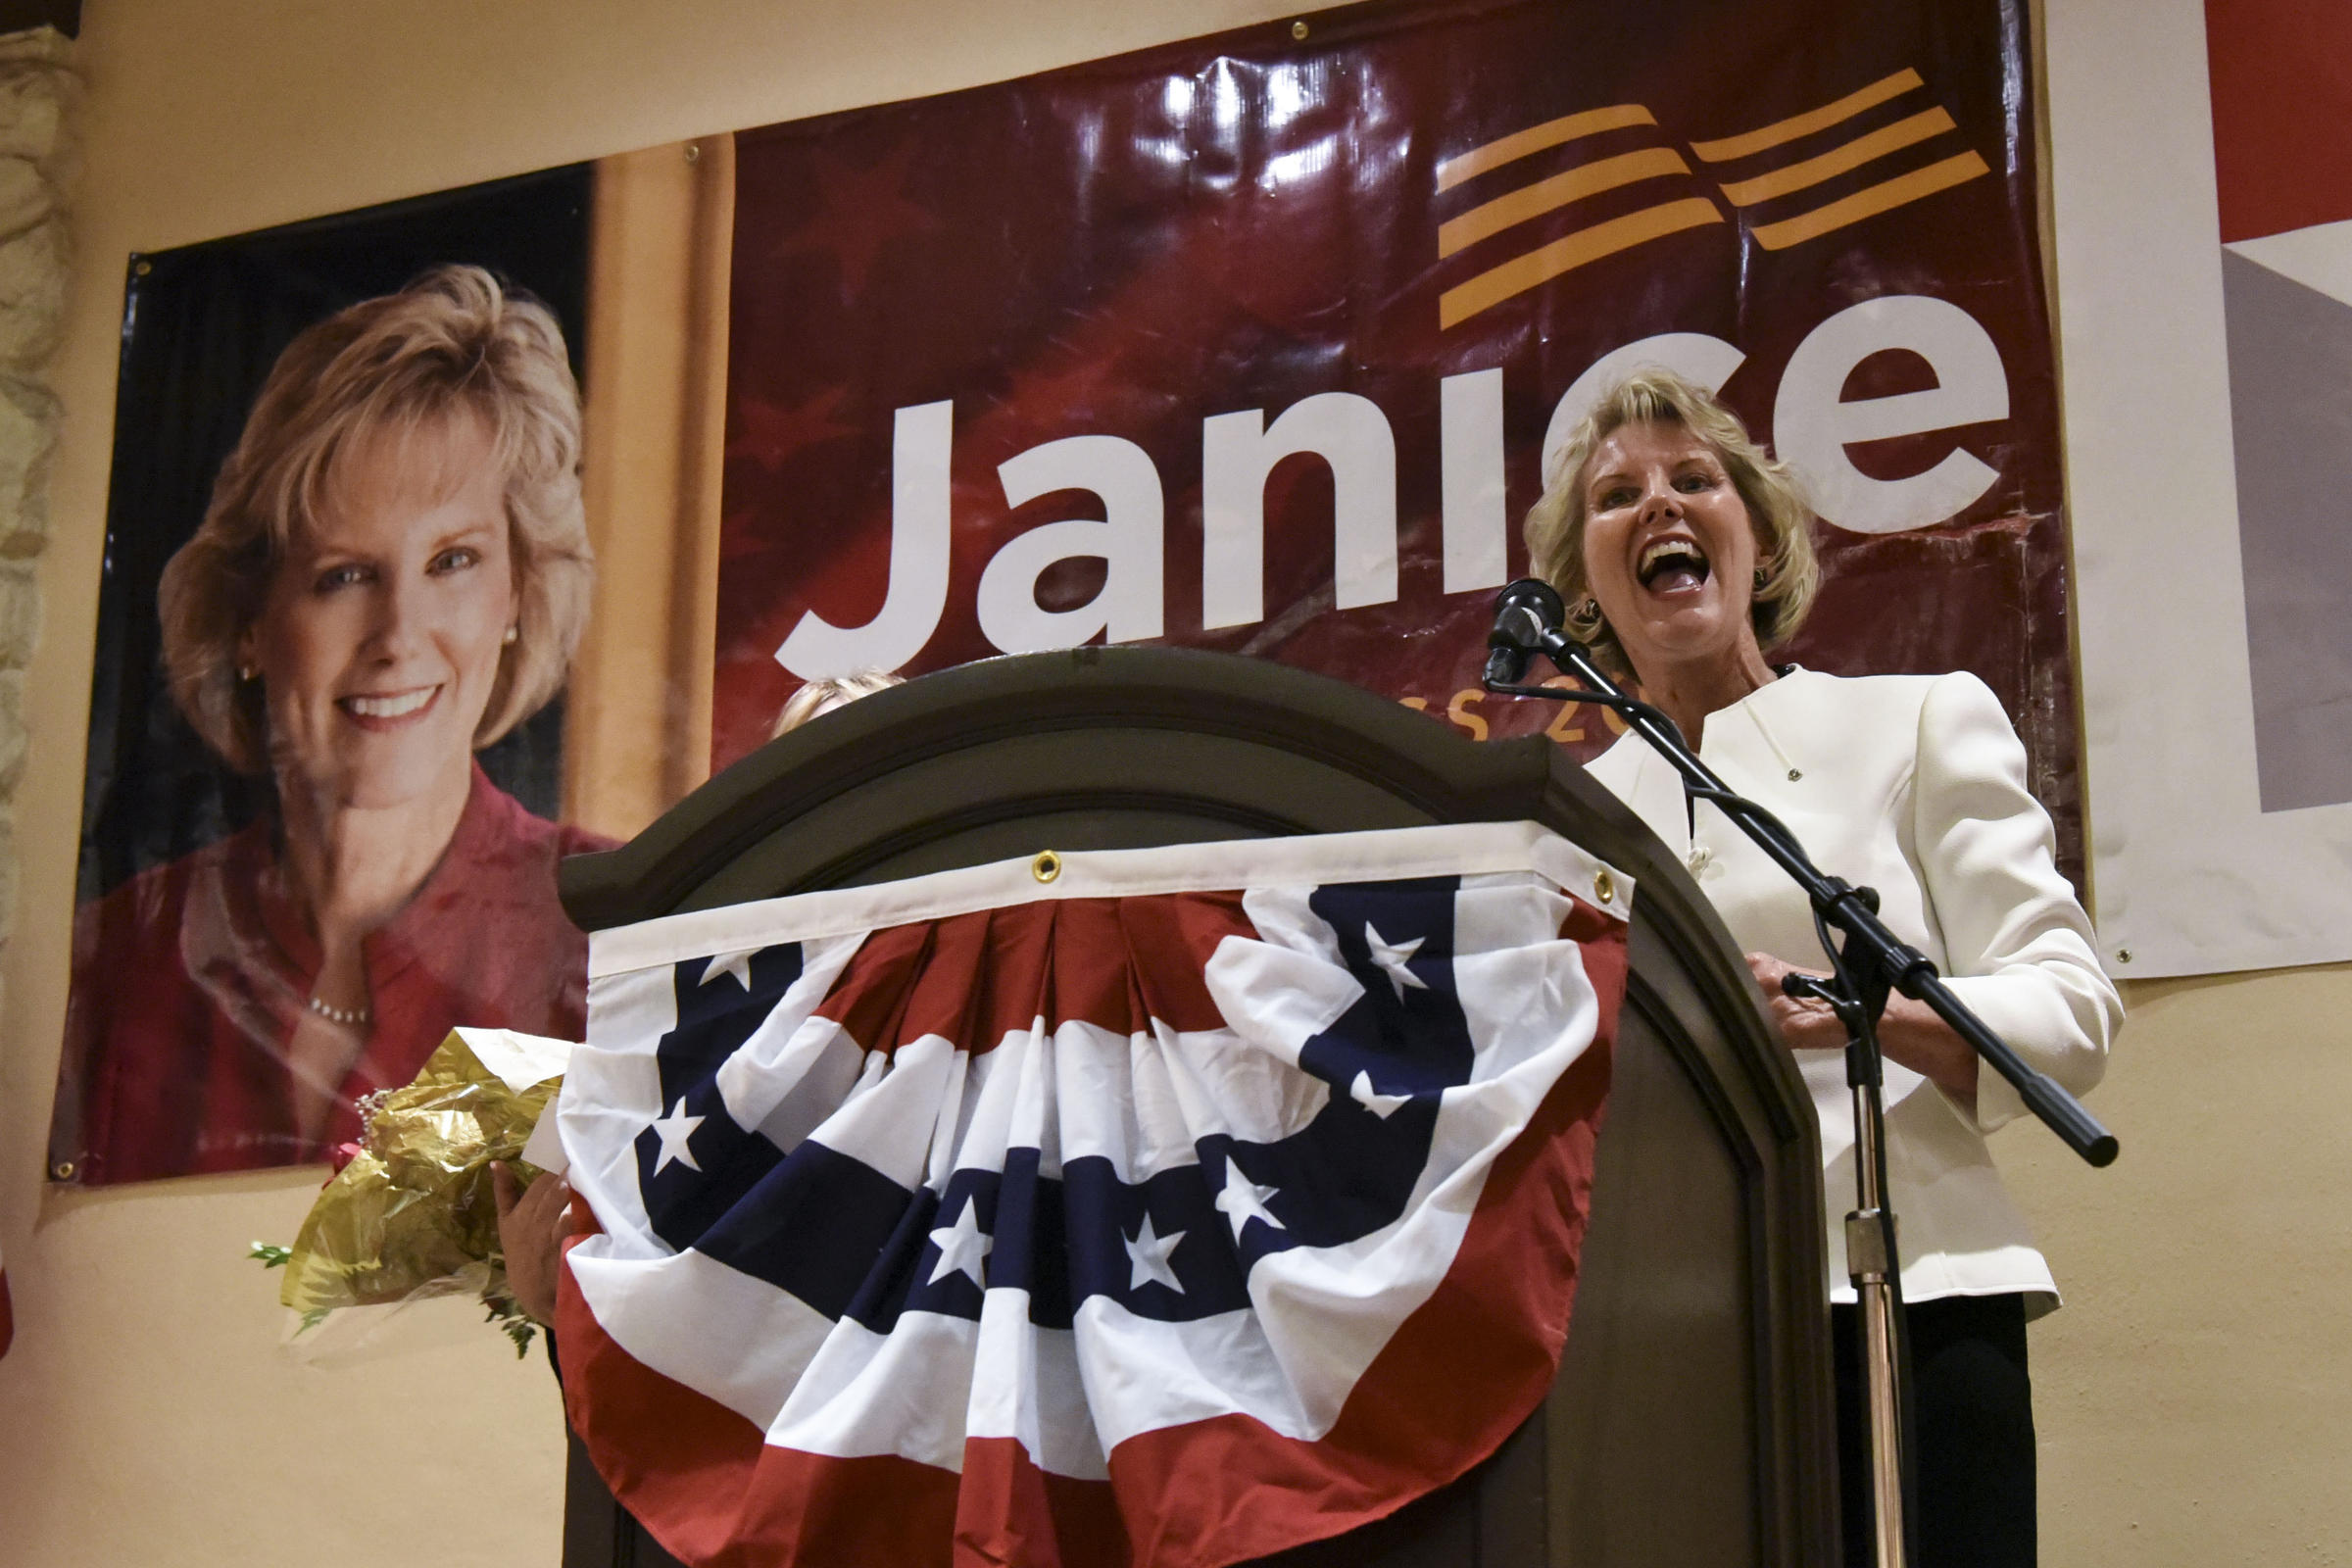 Janice Arnold-Jones   CREDIT CELIA RANEY/KUNM